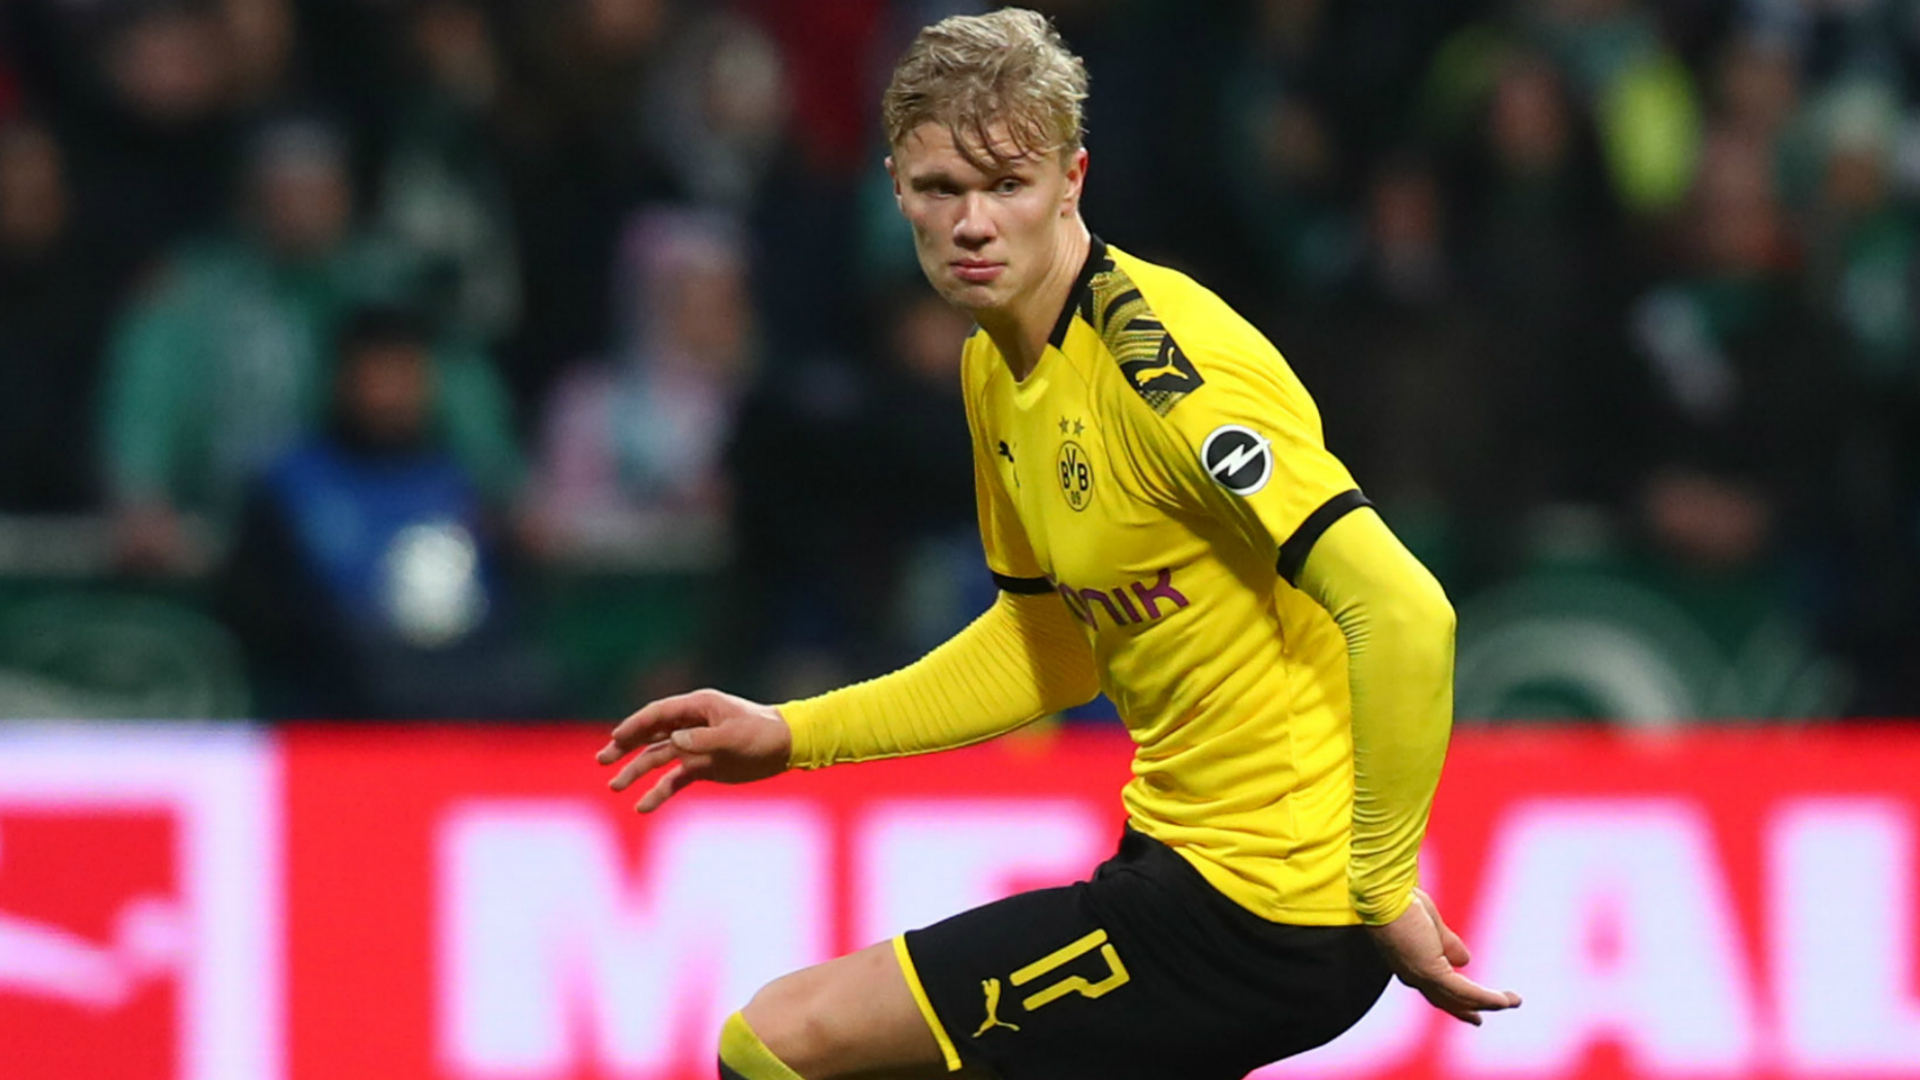 Rumour Has It: Real Madrid in talks with Dortmund over Haaland, PSG want Koulibaly